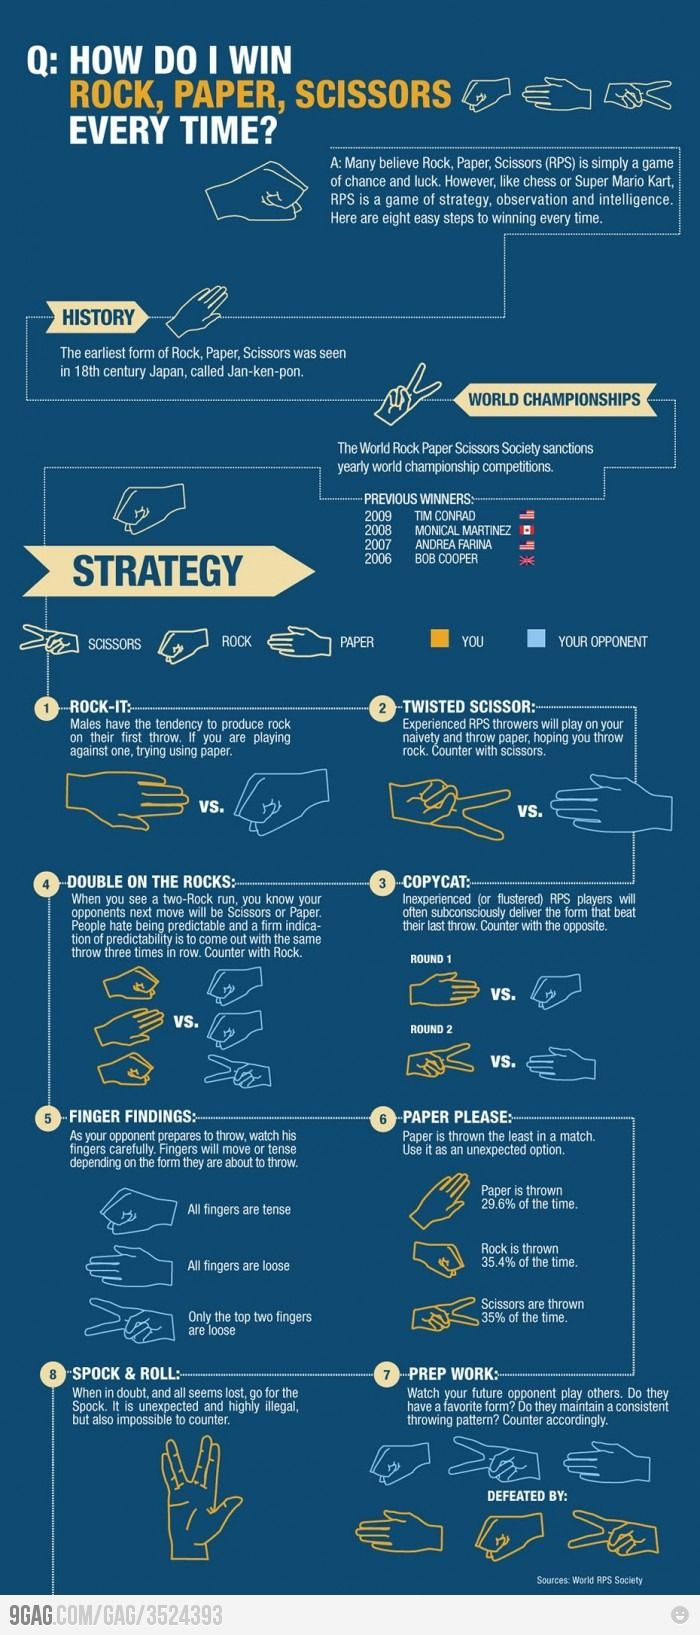 How To Win At Rock, Paper, Scissors Every Time.. #infographic